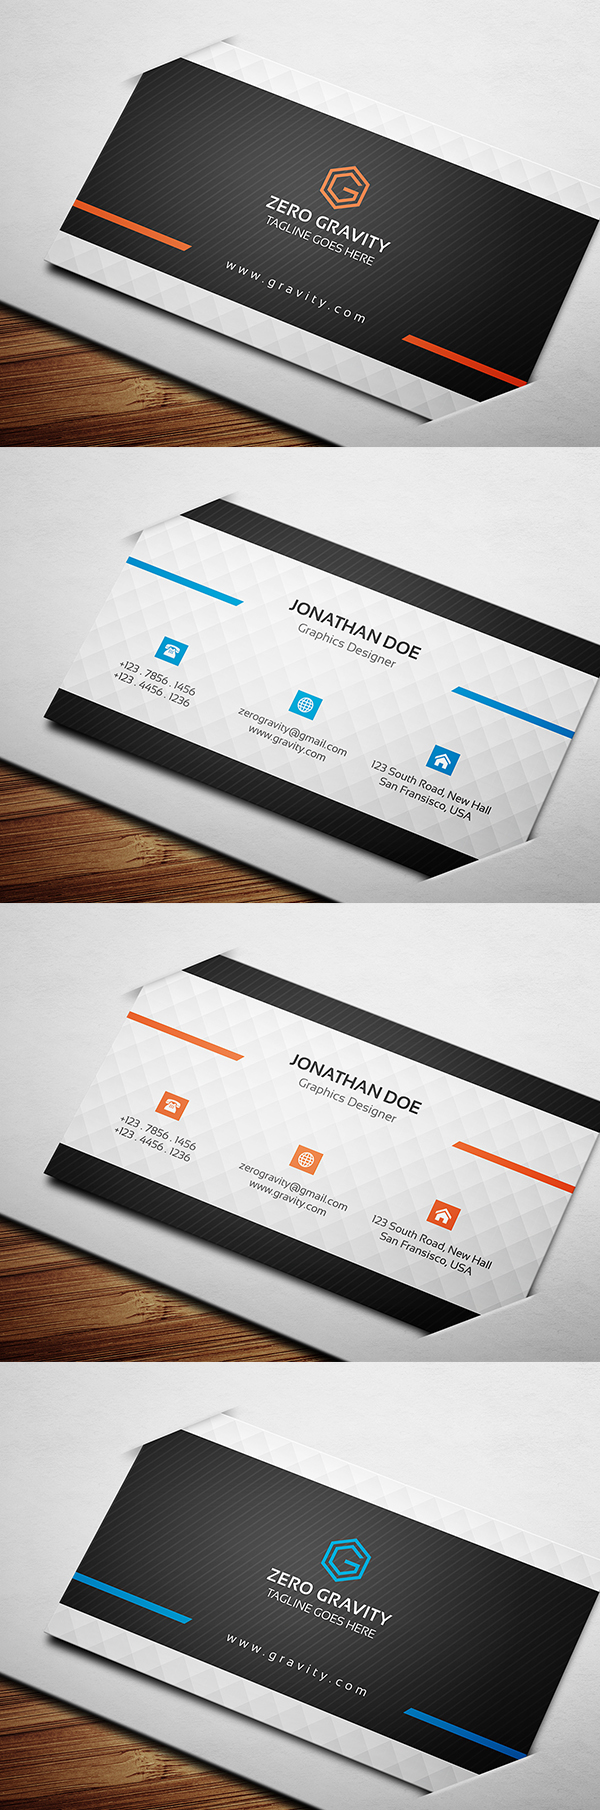 03 Business Card Design